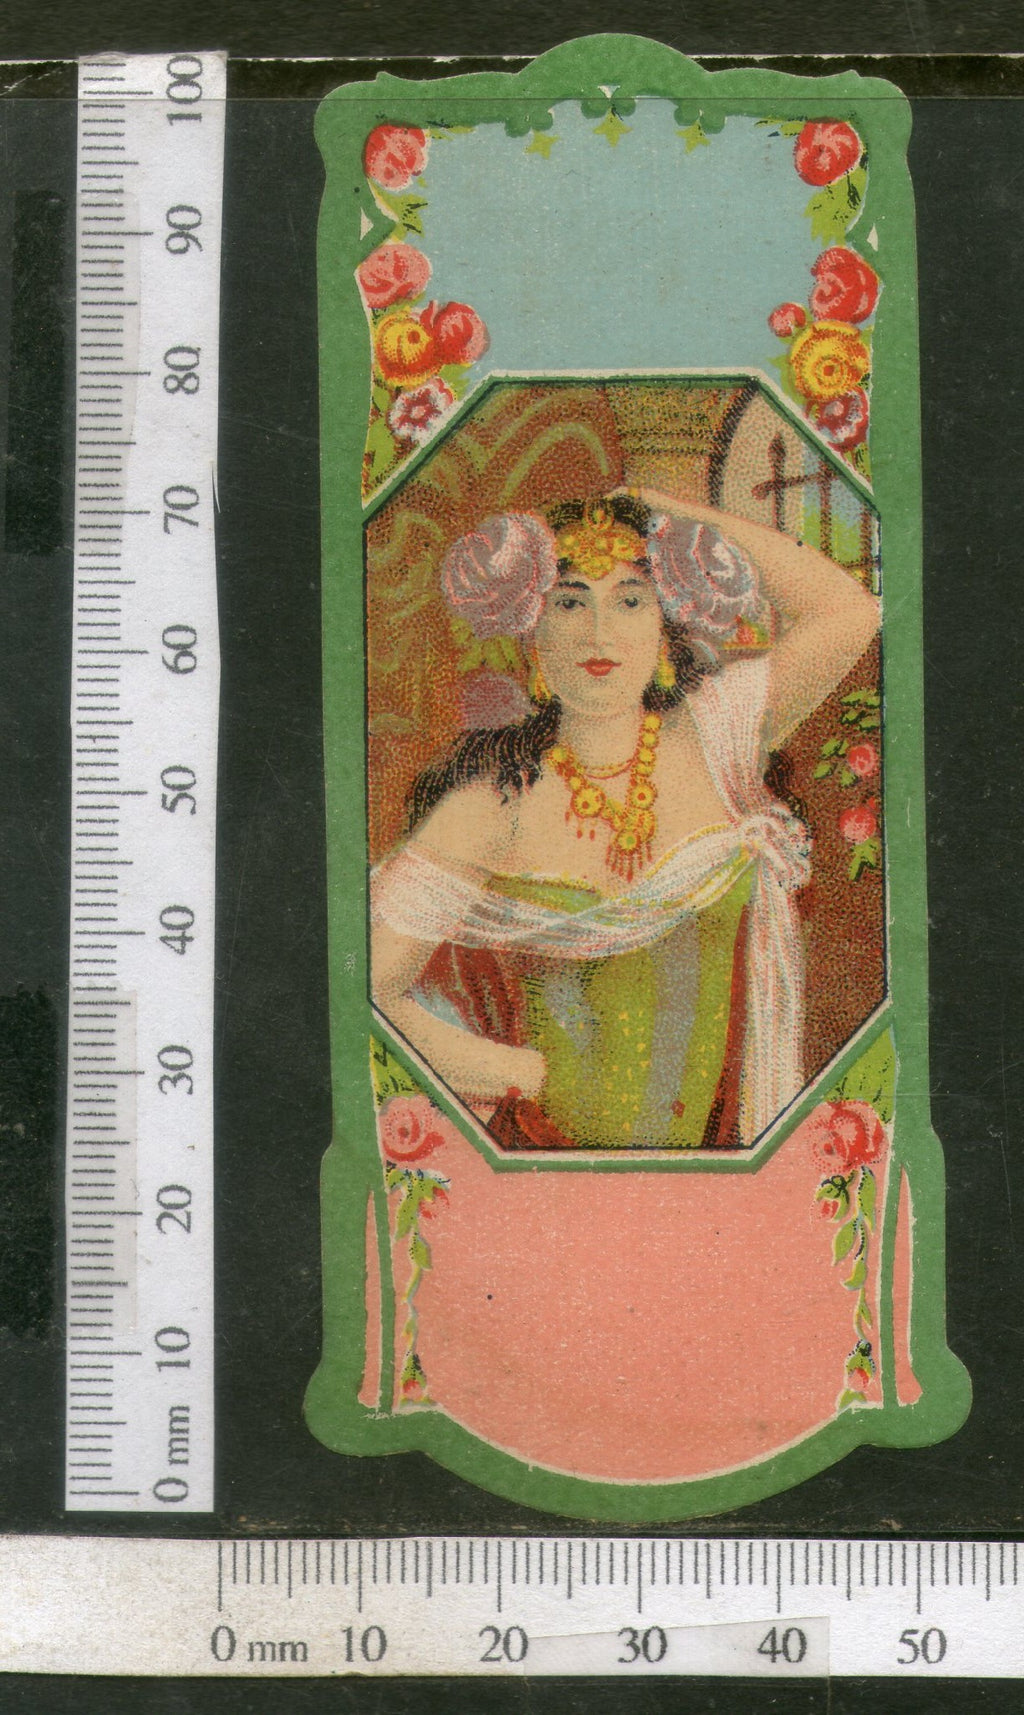 India Vintage Trade Label Women Blank Essential Hair Oil Label # LBL93 - Phil India Stamps